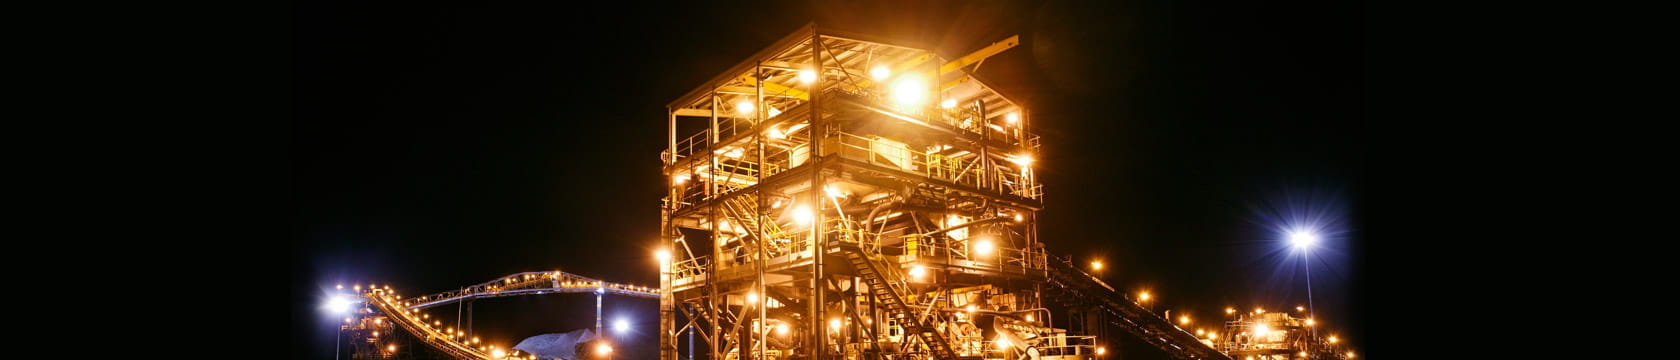 night scene of mineral processing infrastructure